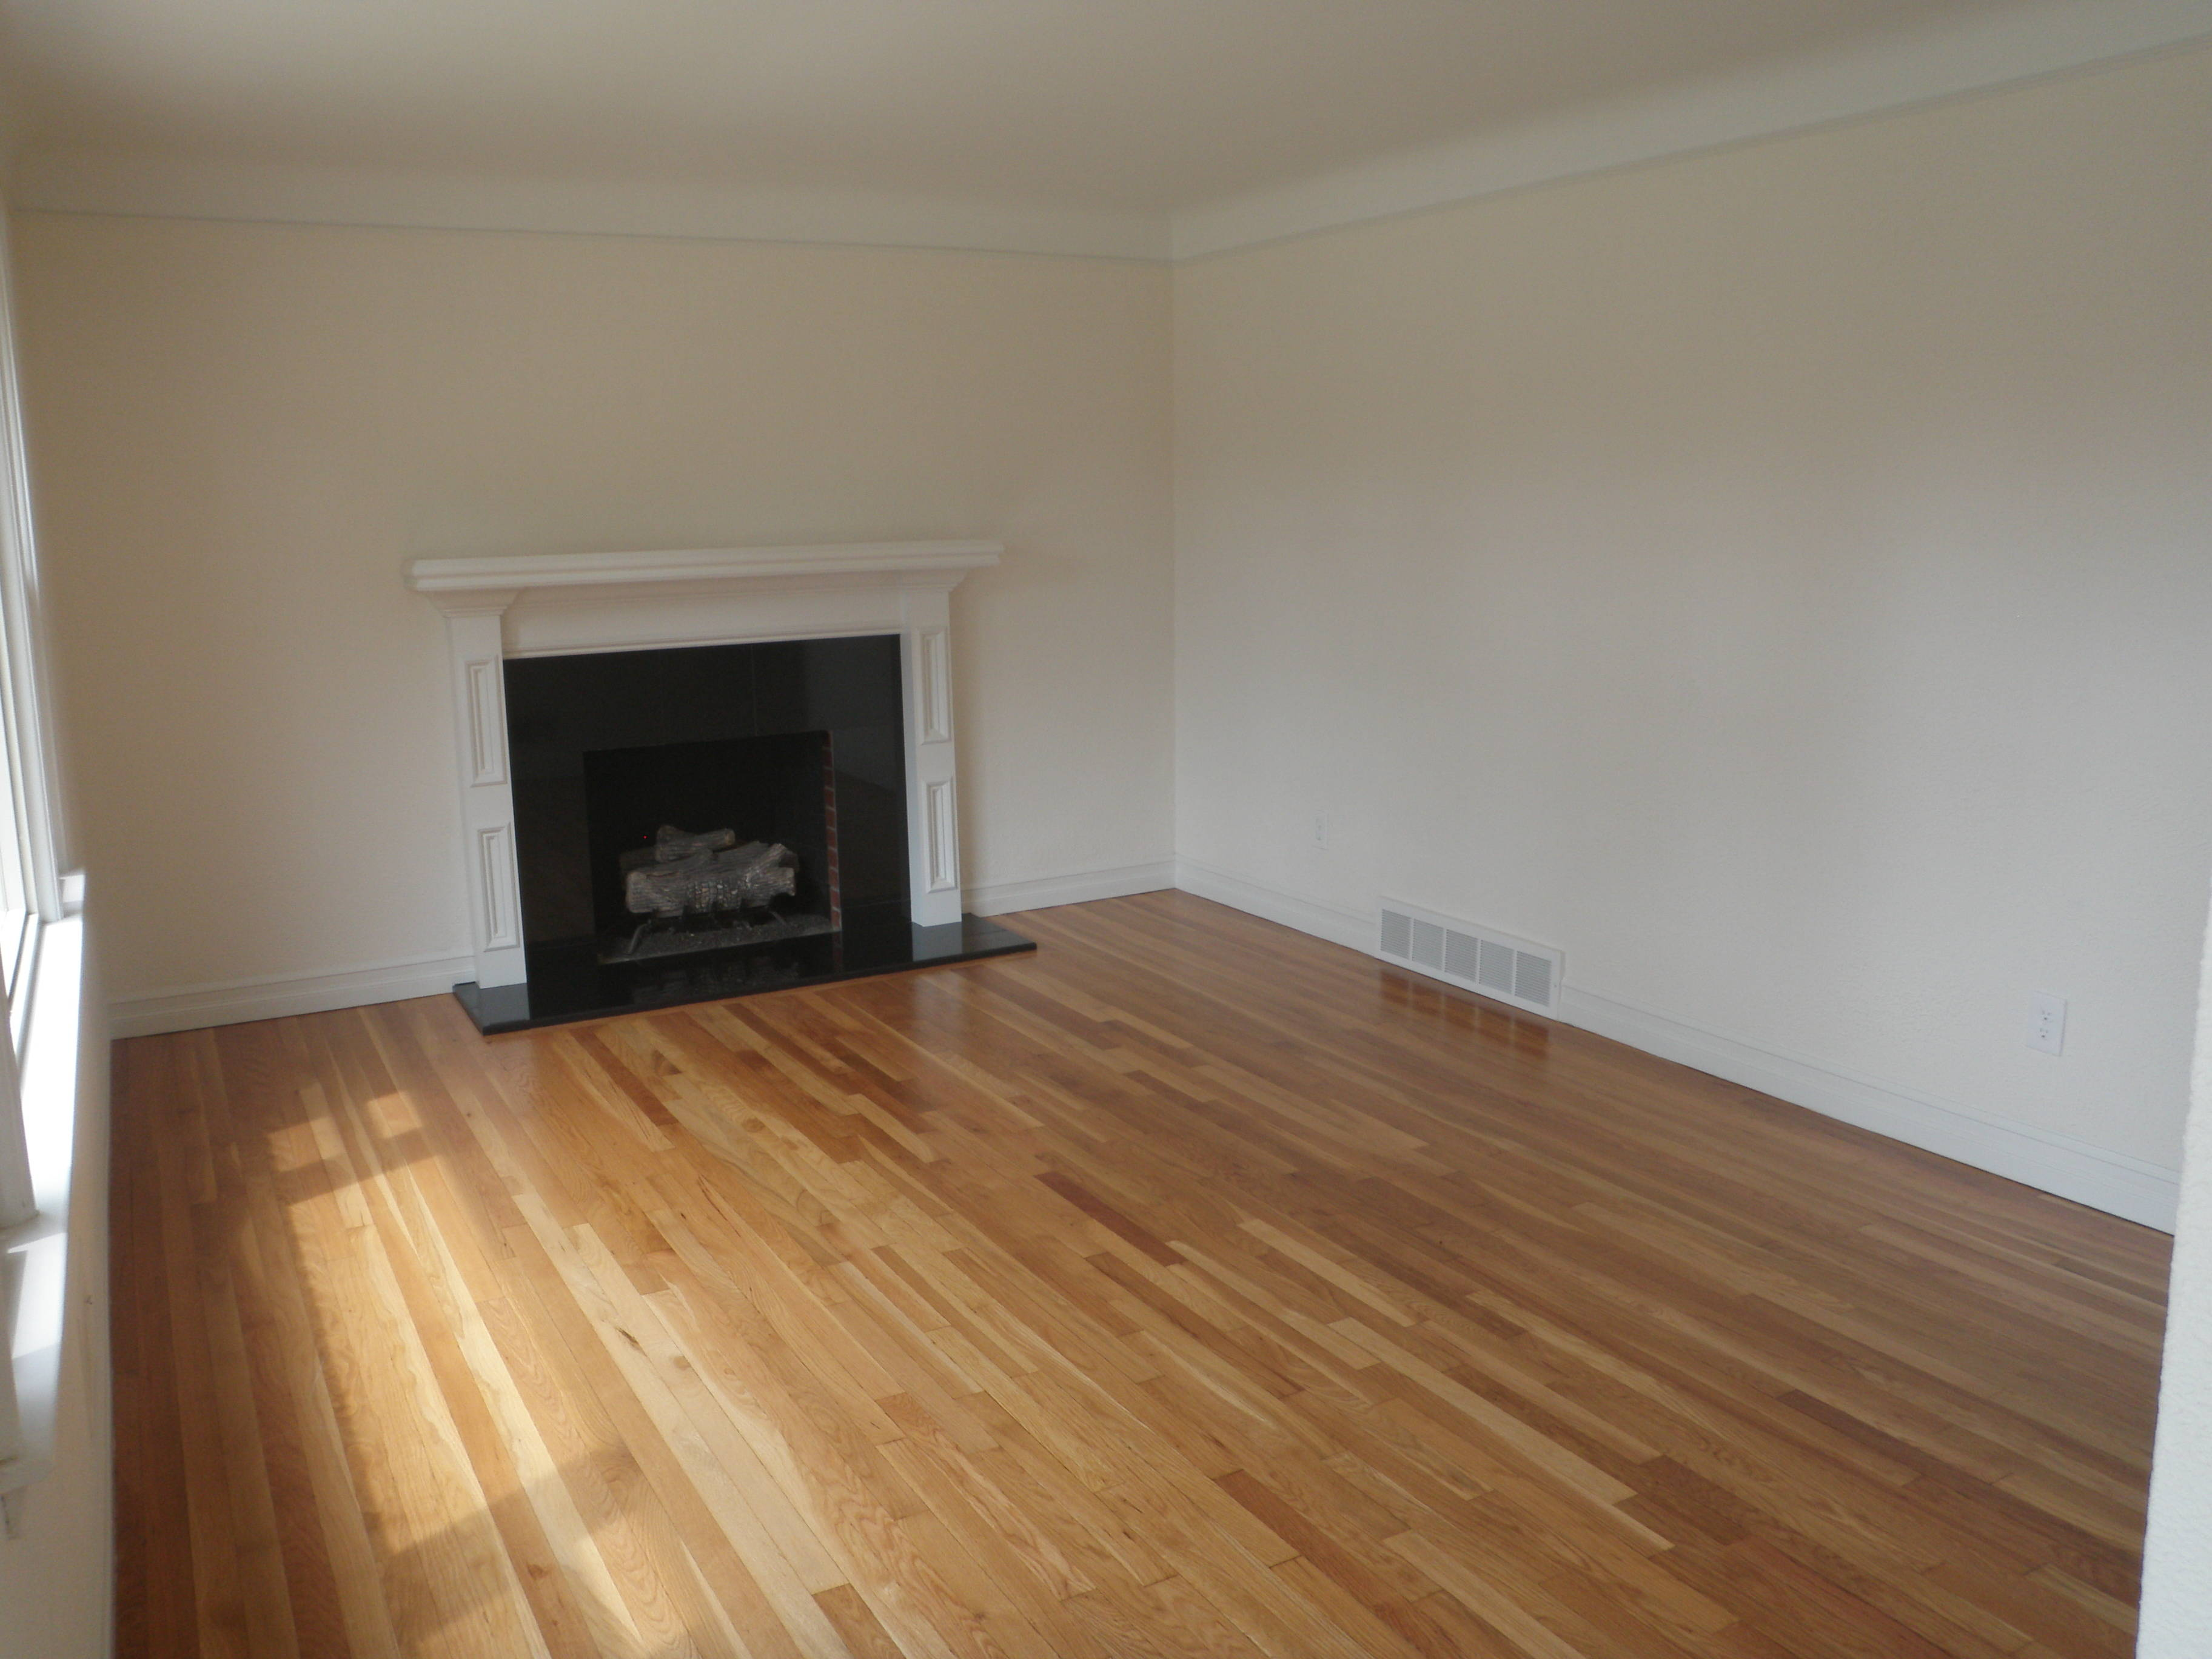 redone wood floor with fireplace